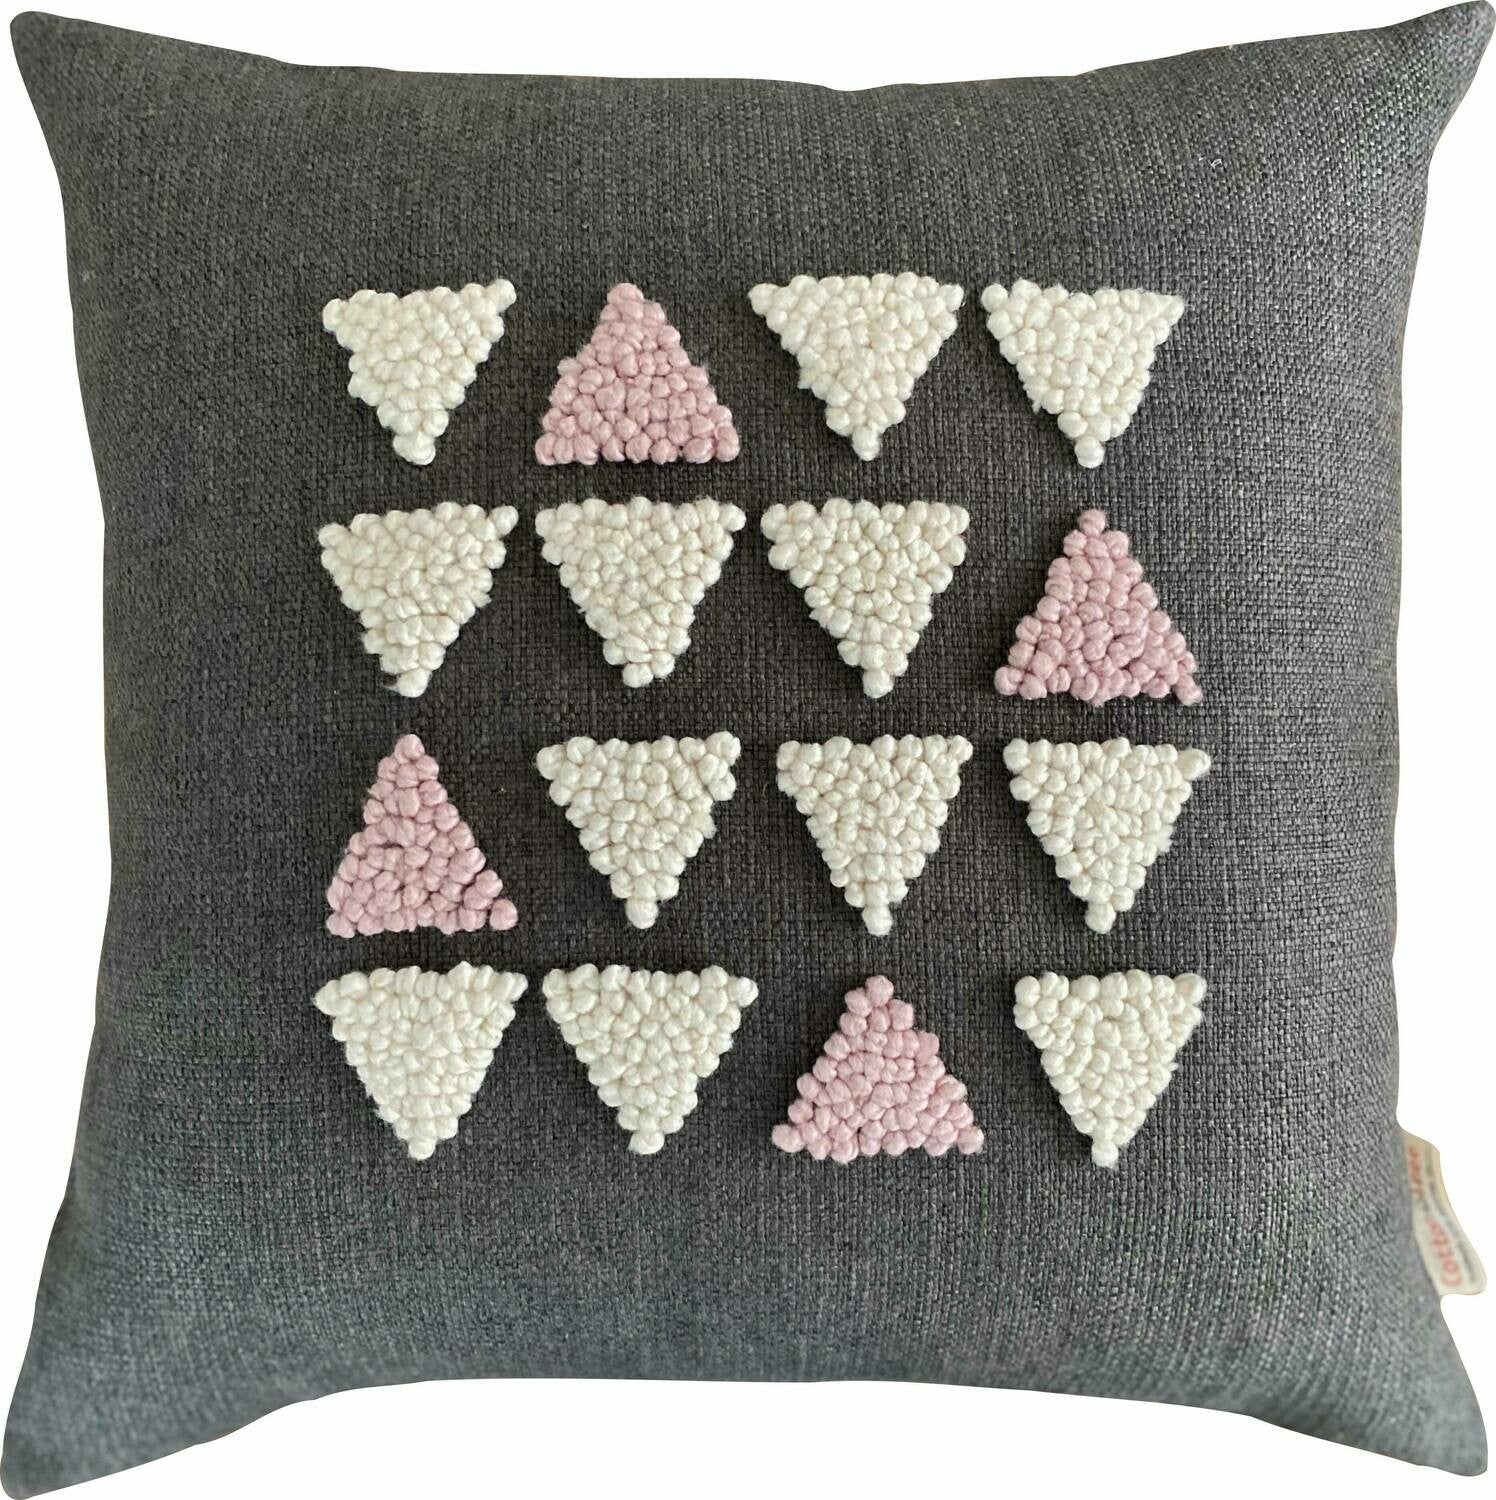 Punch Needle Cushion - AfriScandi Pattern 7